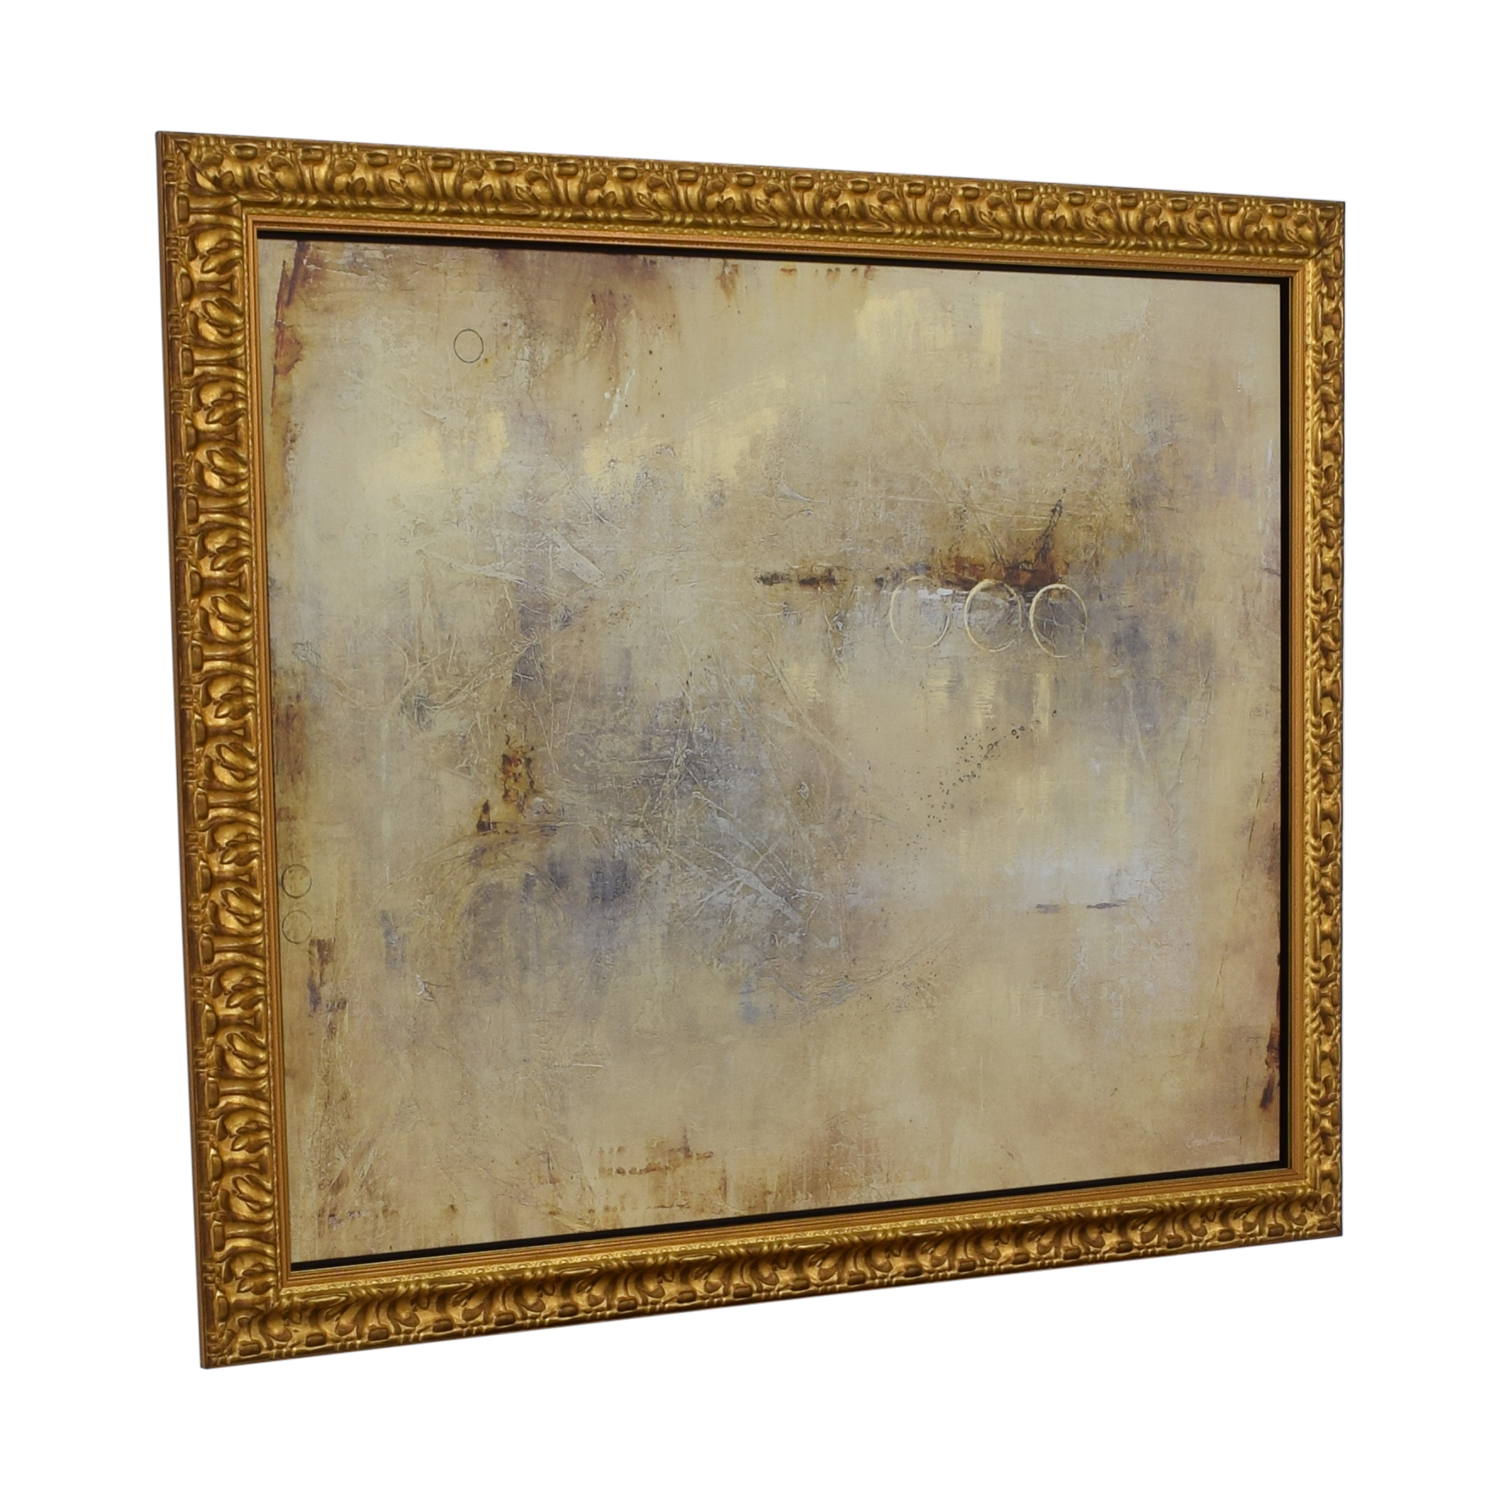 Ethan Allen Ethan Allen Subliminal I Abstract Painting for sale